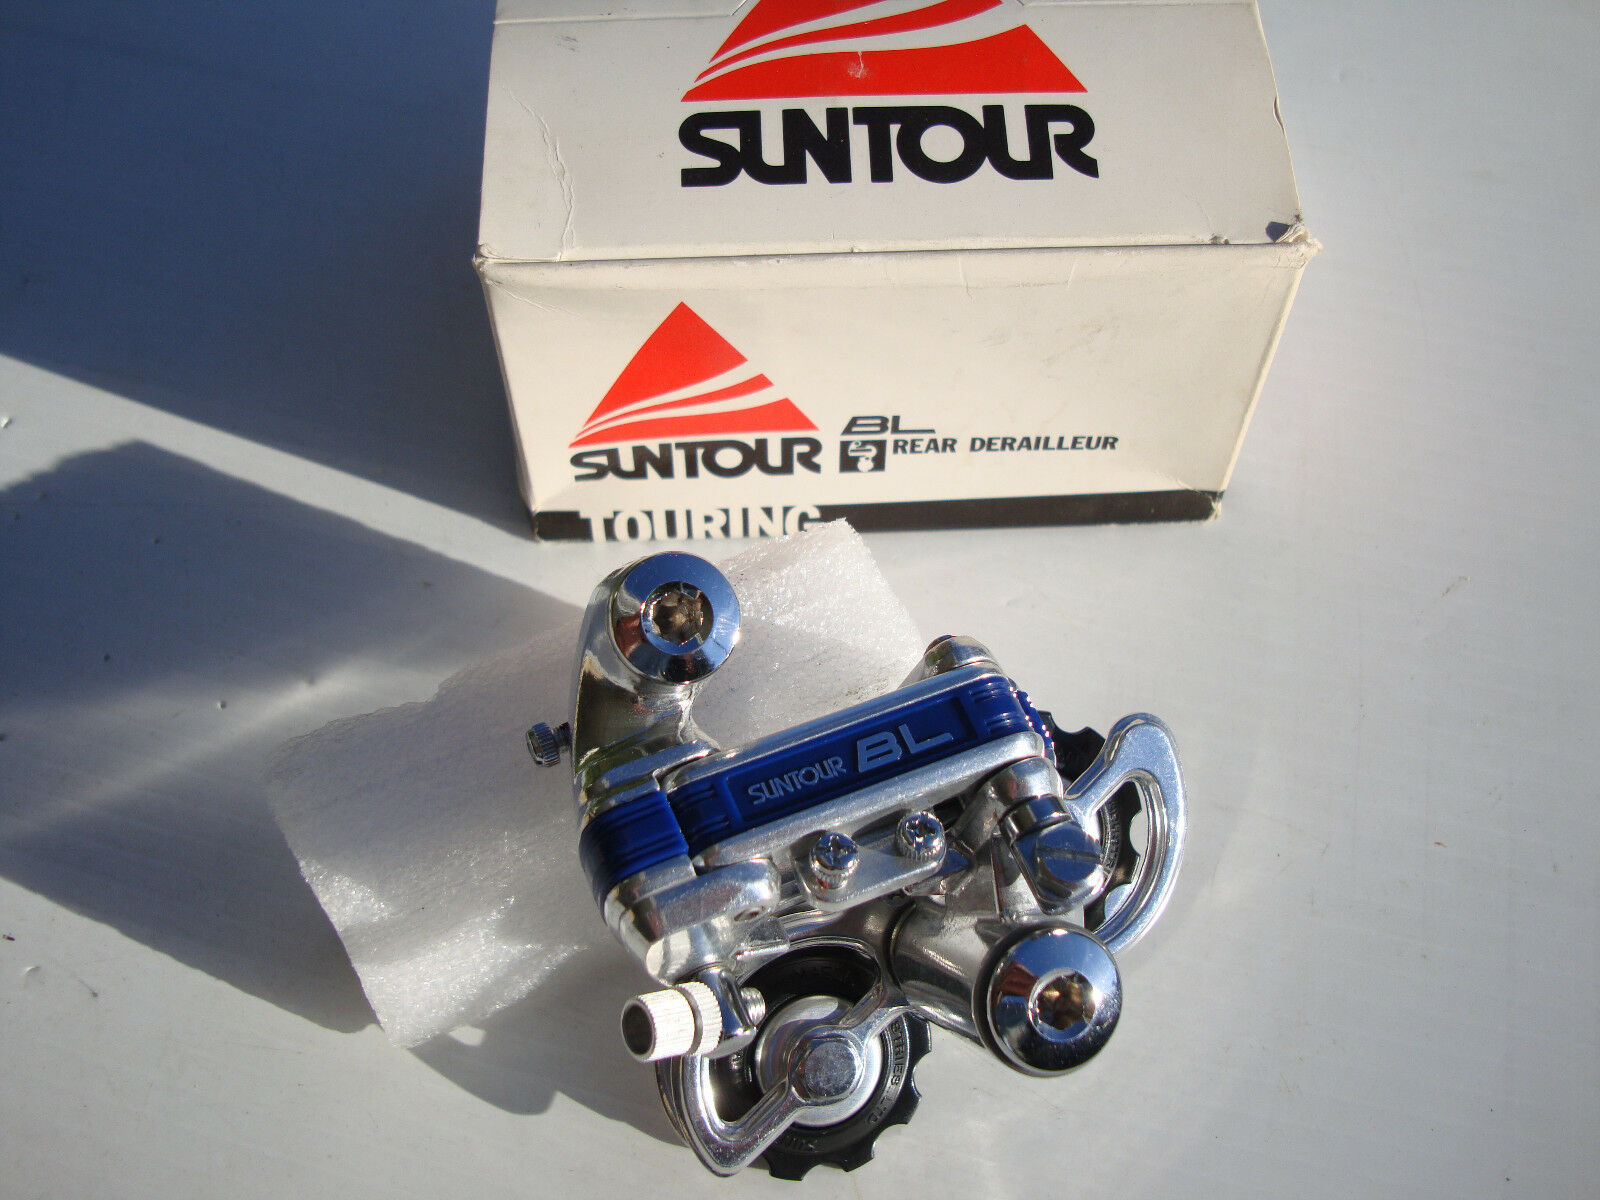 NOS Suntour bluee Line  BL Rear Derailleur Bike Road Bicycle Trek 5 6 7 Spd Fuji  hastened to see